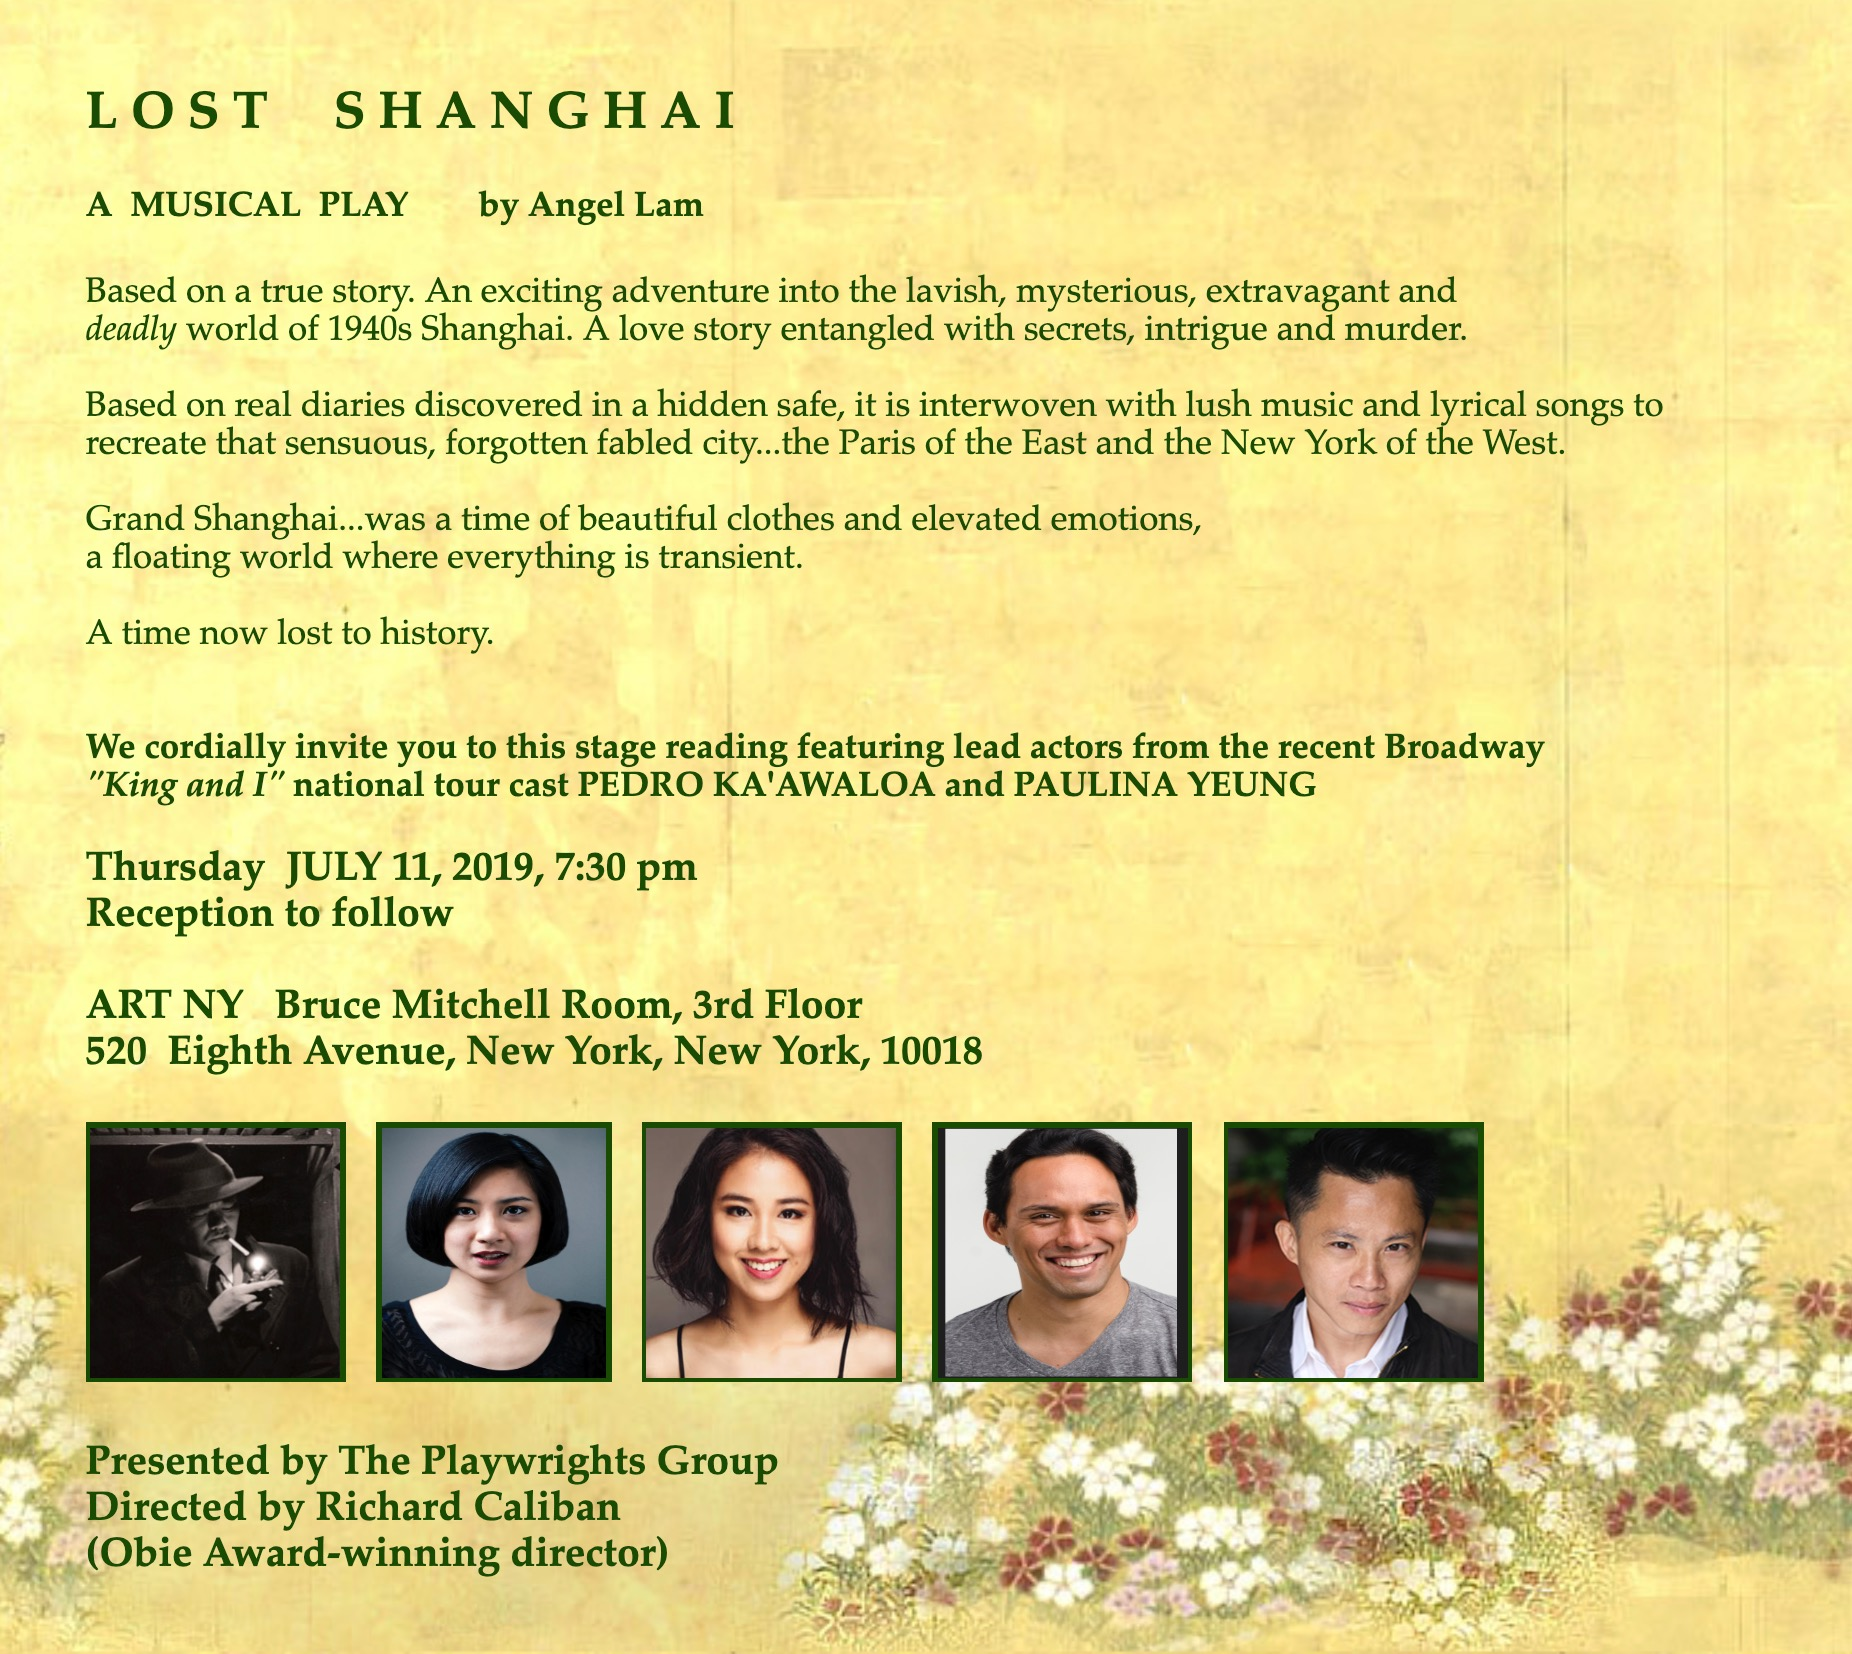 Lost in Shanghai: A Staged Reading - The Playwrights Group